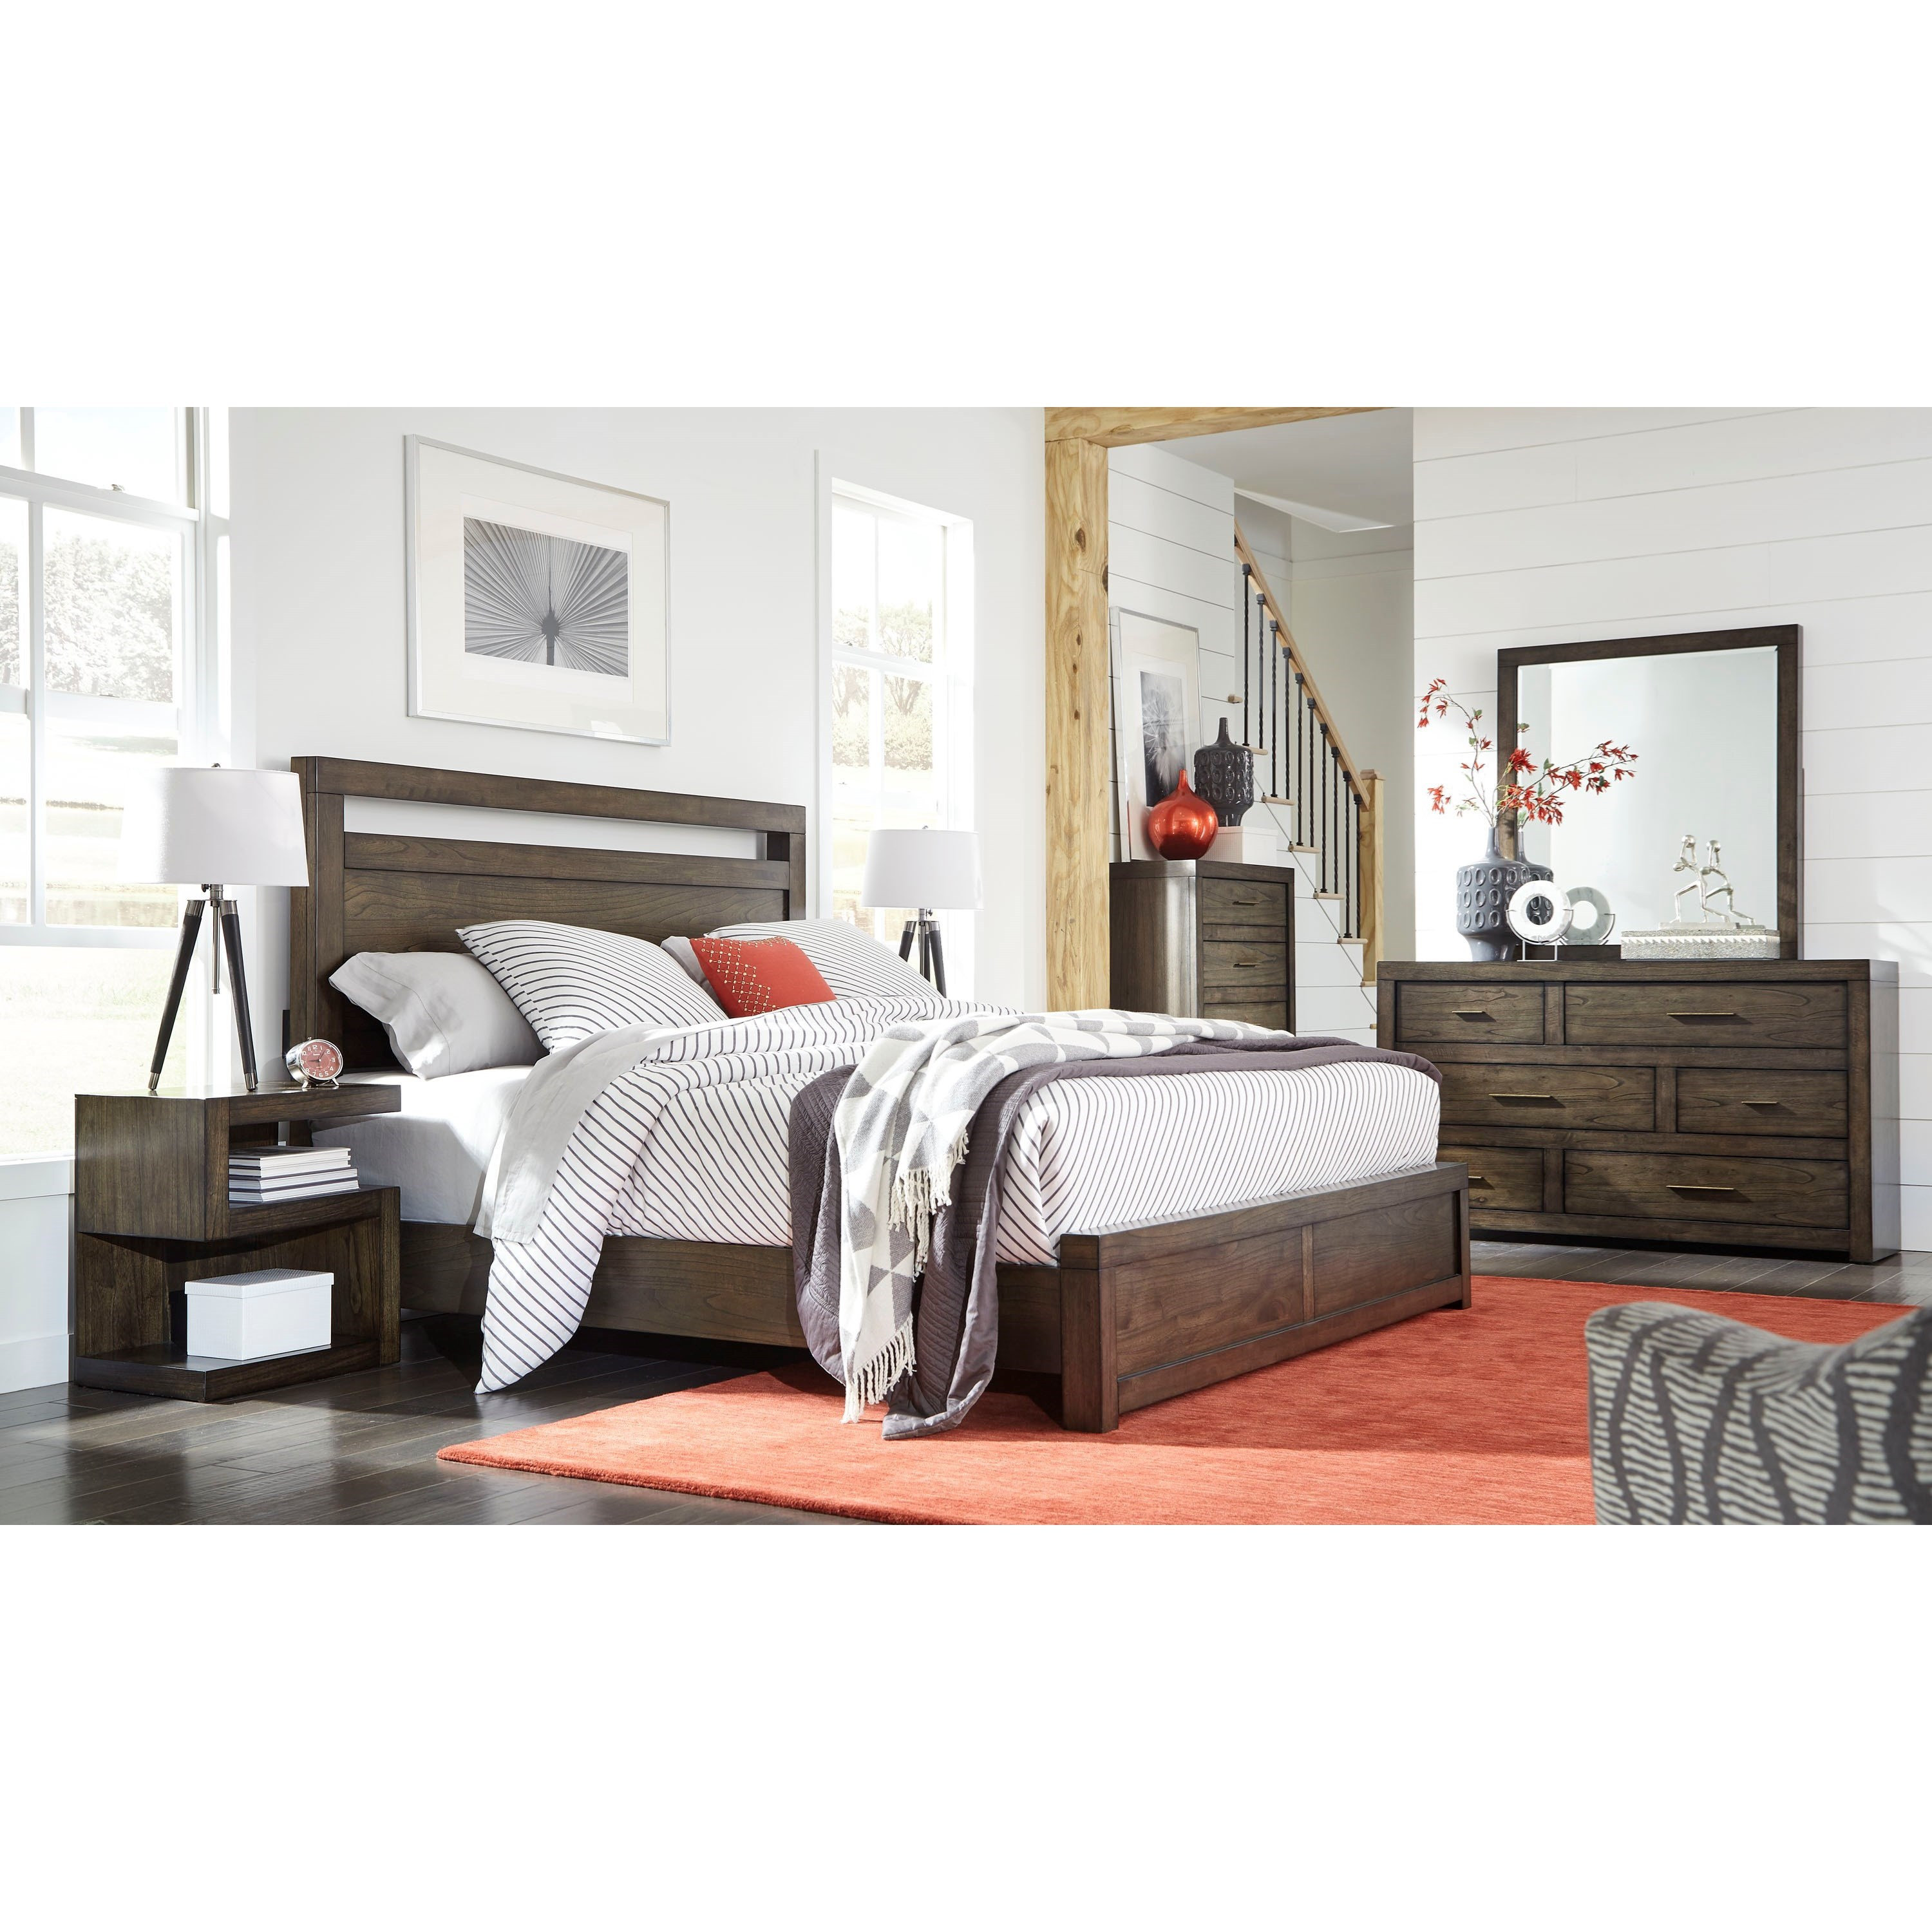 Aspenhome Modern Loft California King Bedroom Group - Item Number: IML-BRN CK Bedroom Group 2